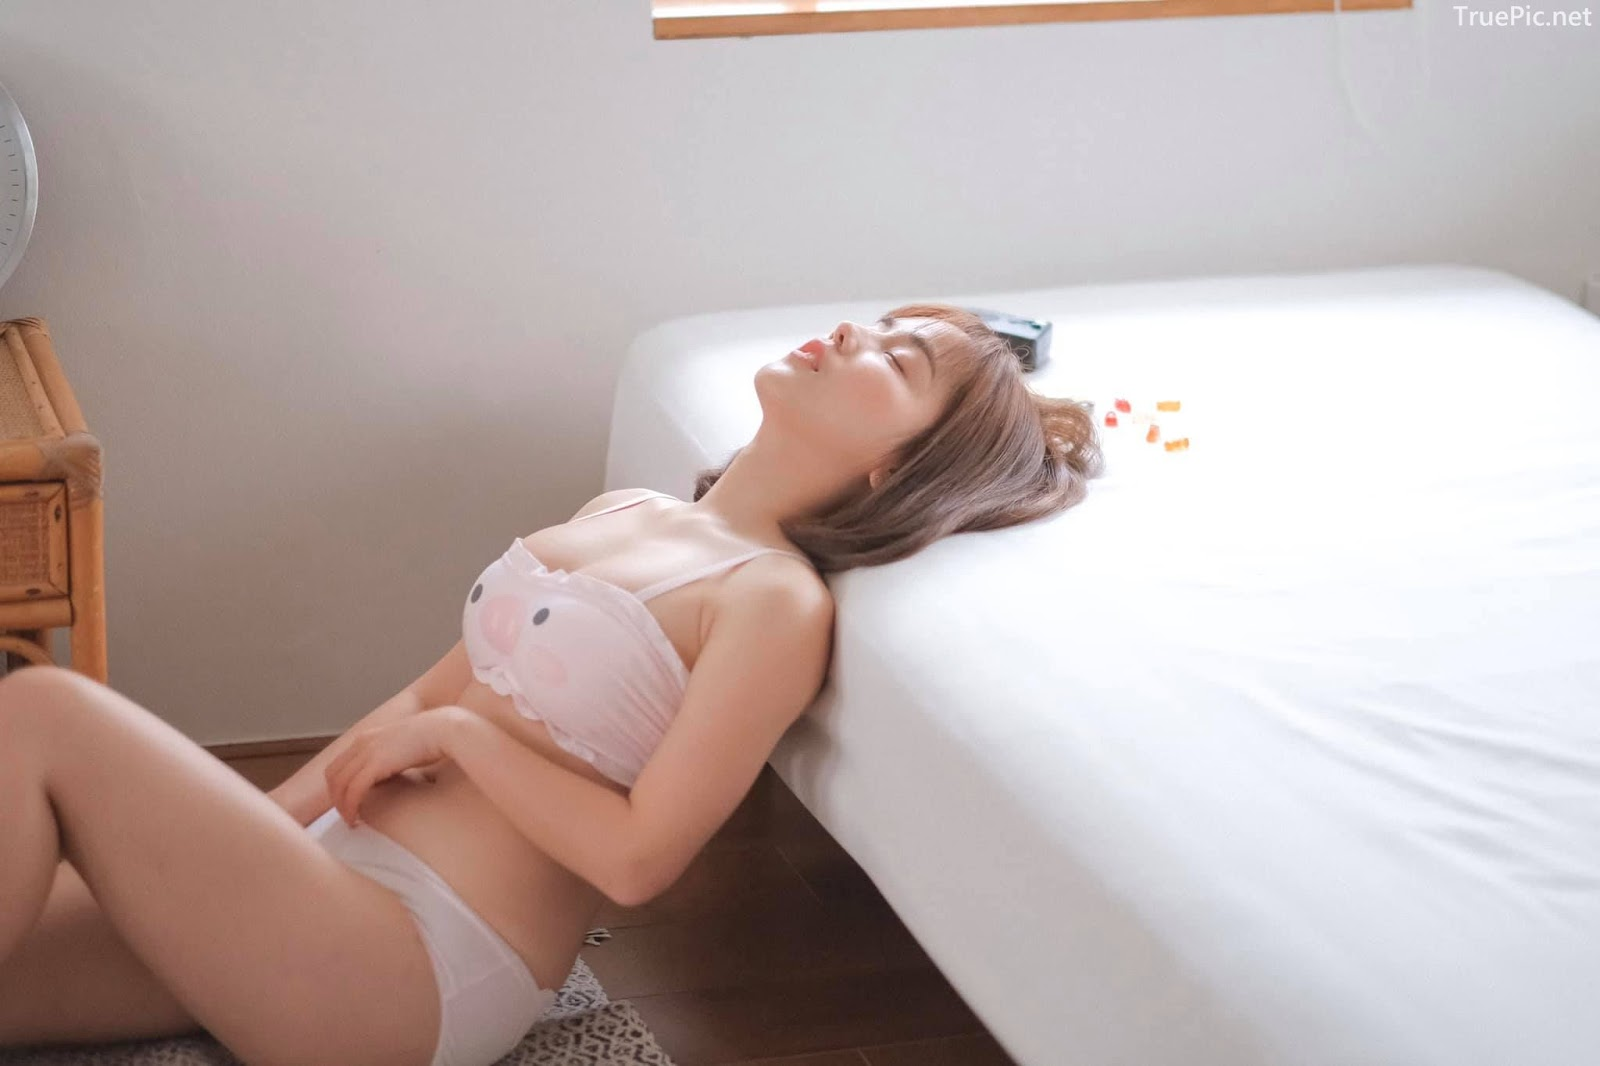 Thailand sexy model - Kanlaya Sae-ngow - Sweet Candy Girl - TruePic.net- Picture 7